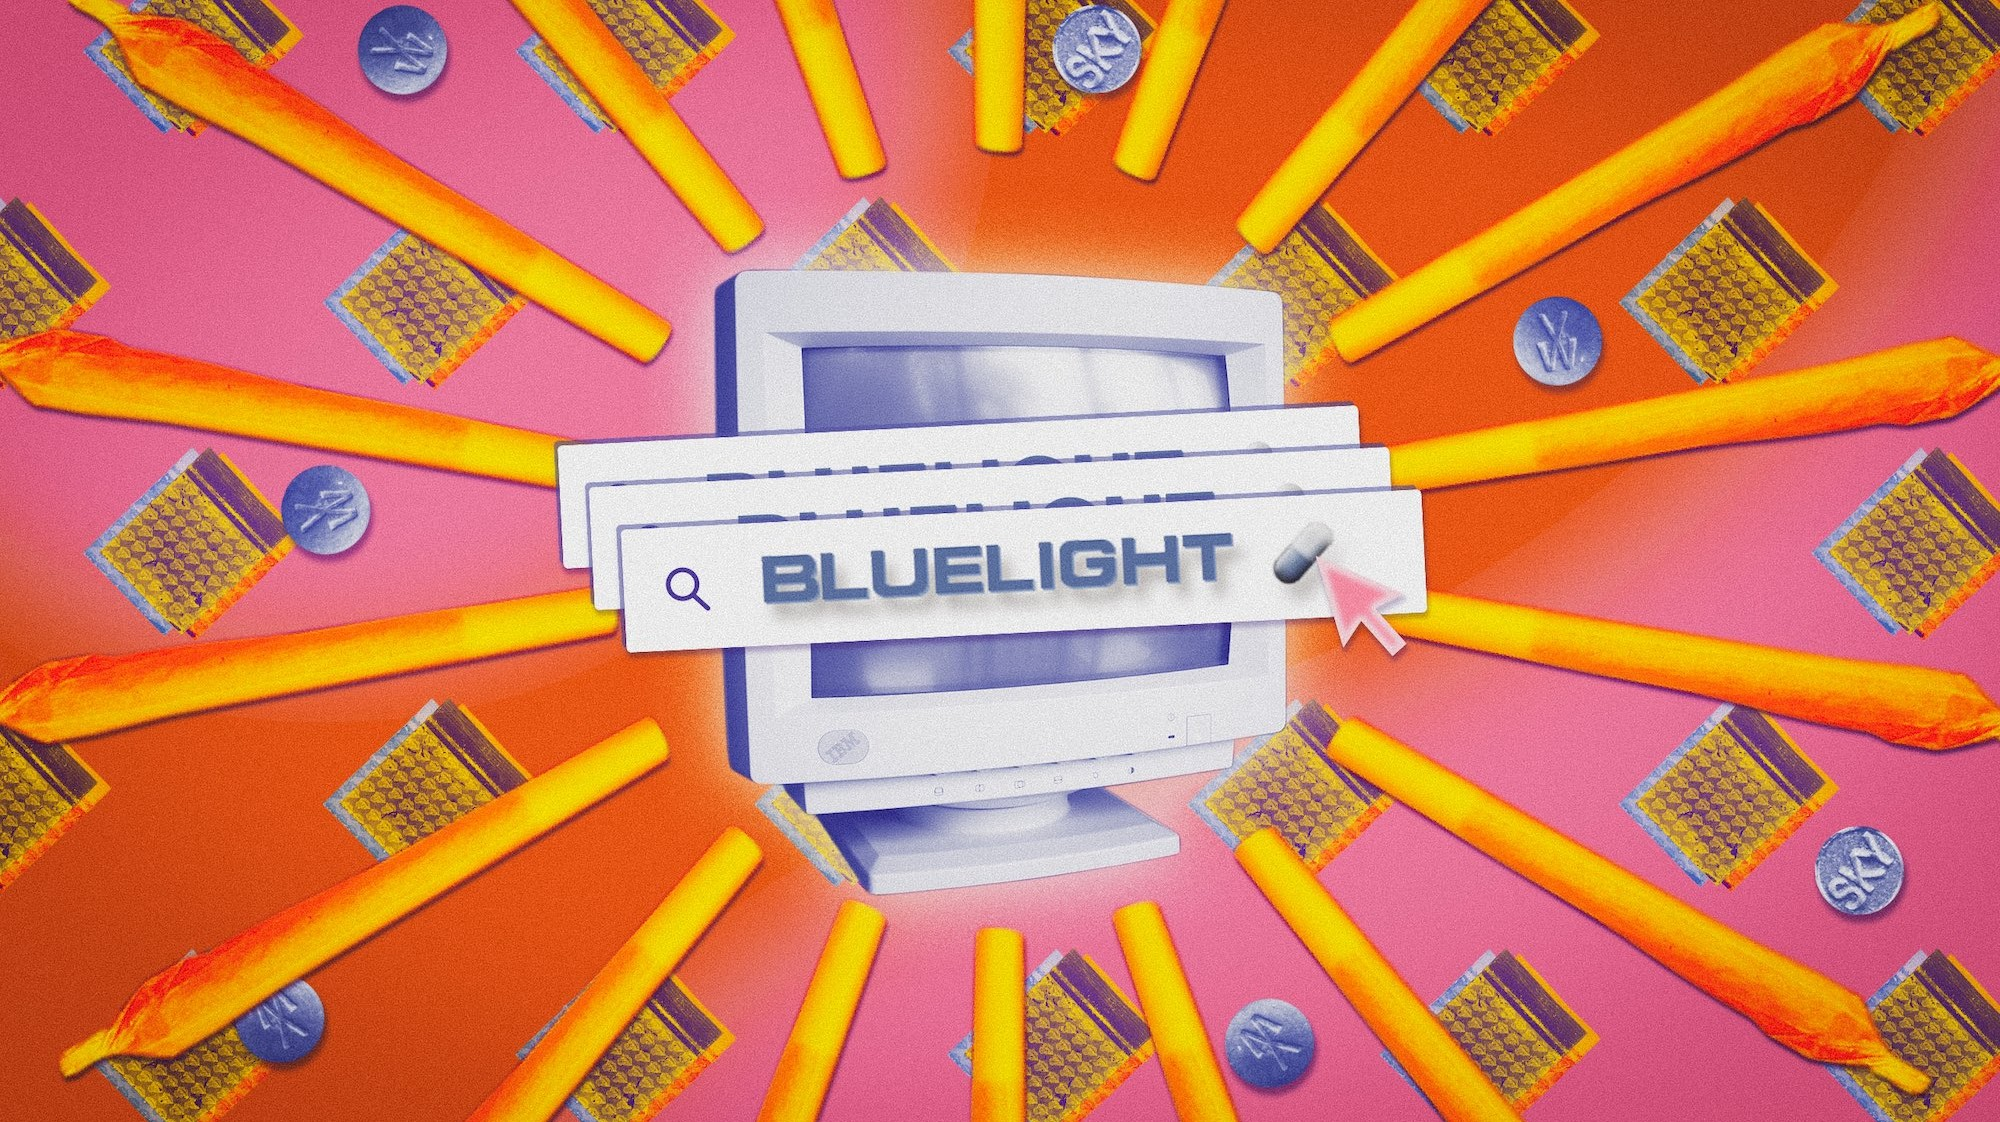 How 'Bluelight' Became a Life-Saving Encyclopedia of Drug